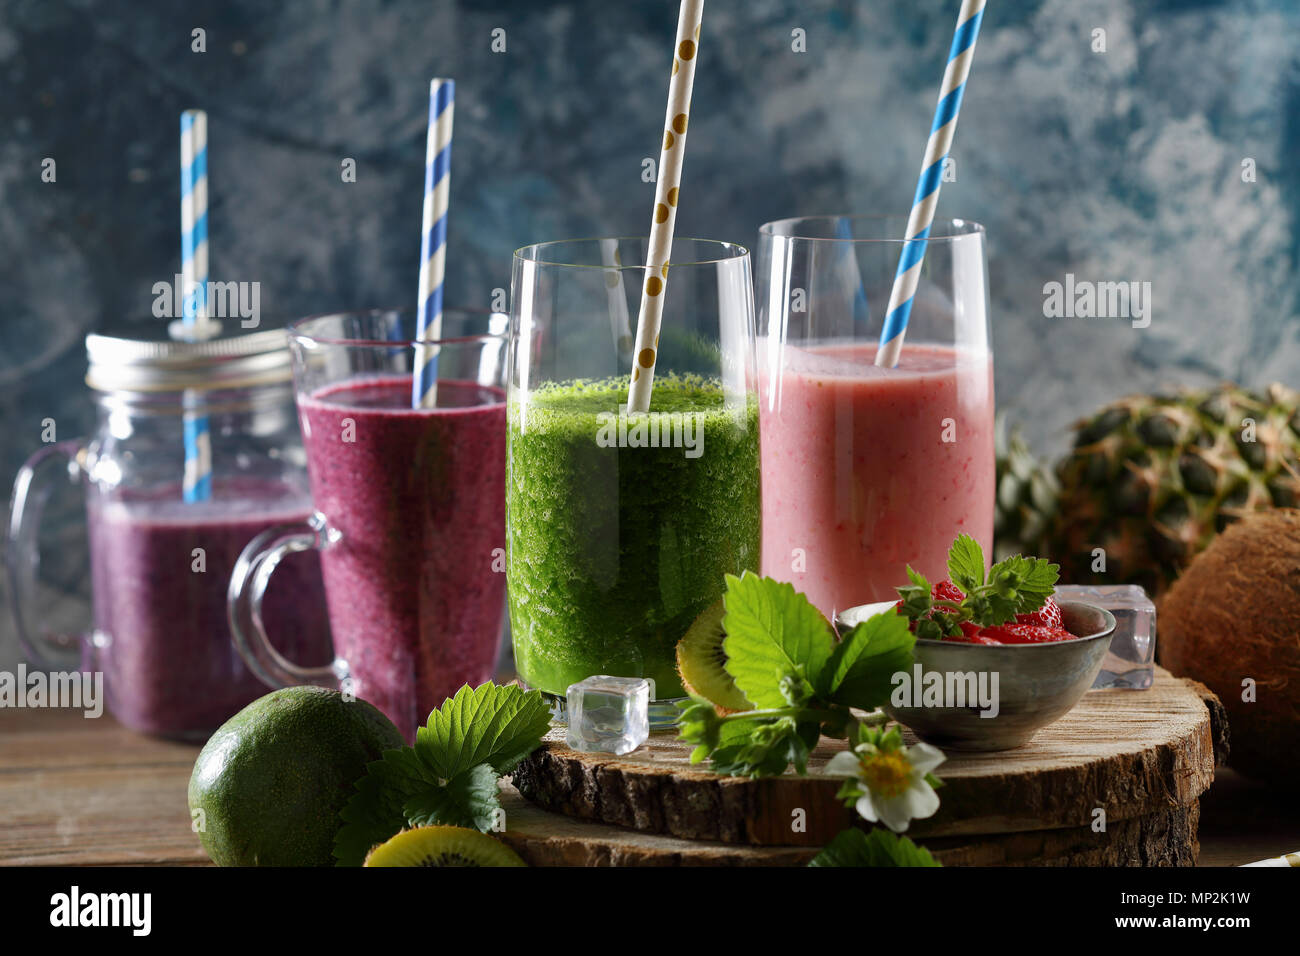 Summer drink in glasses, beverages - Stock Image